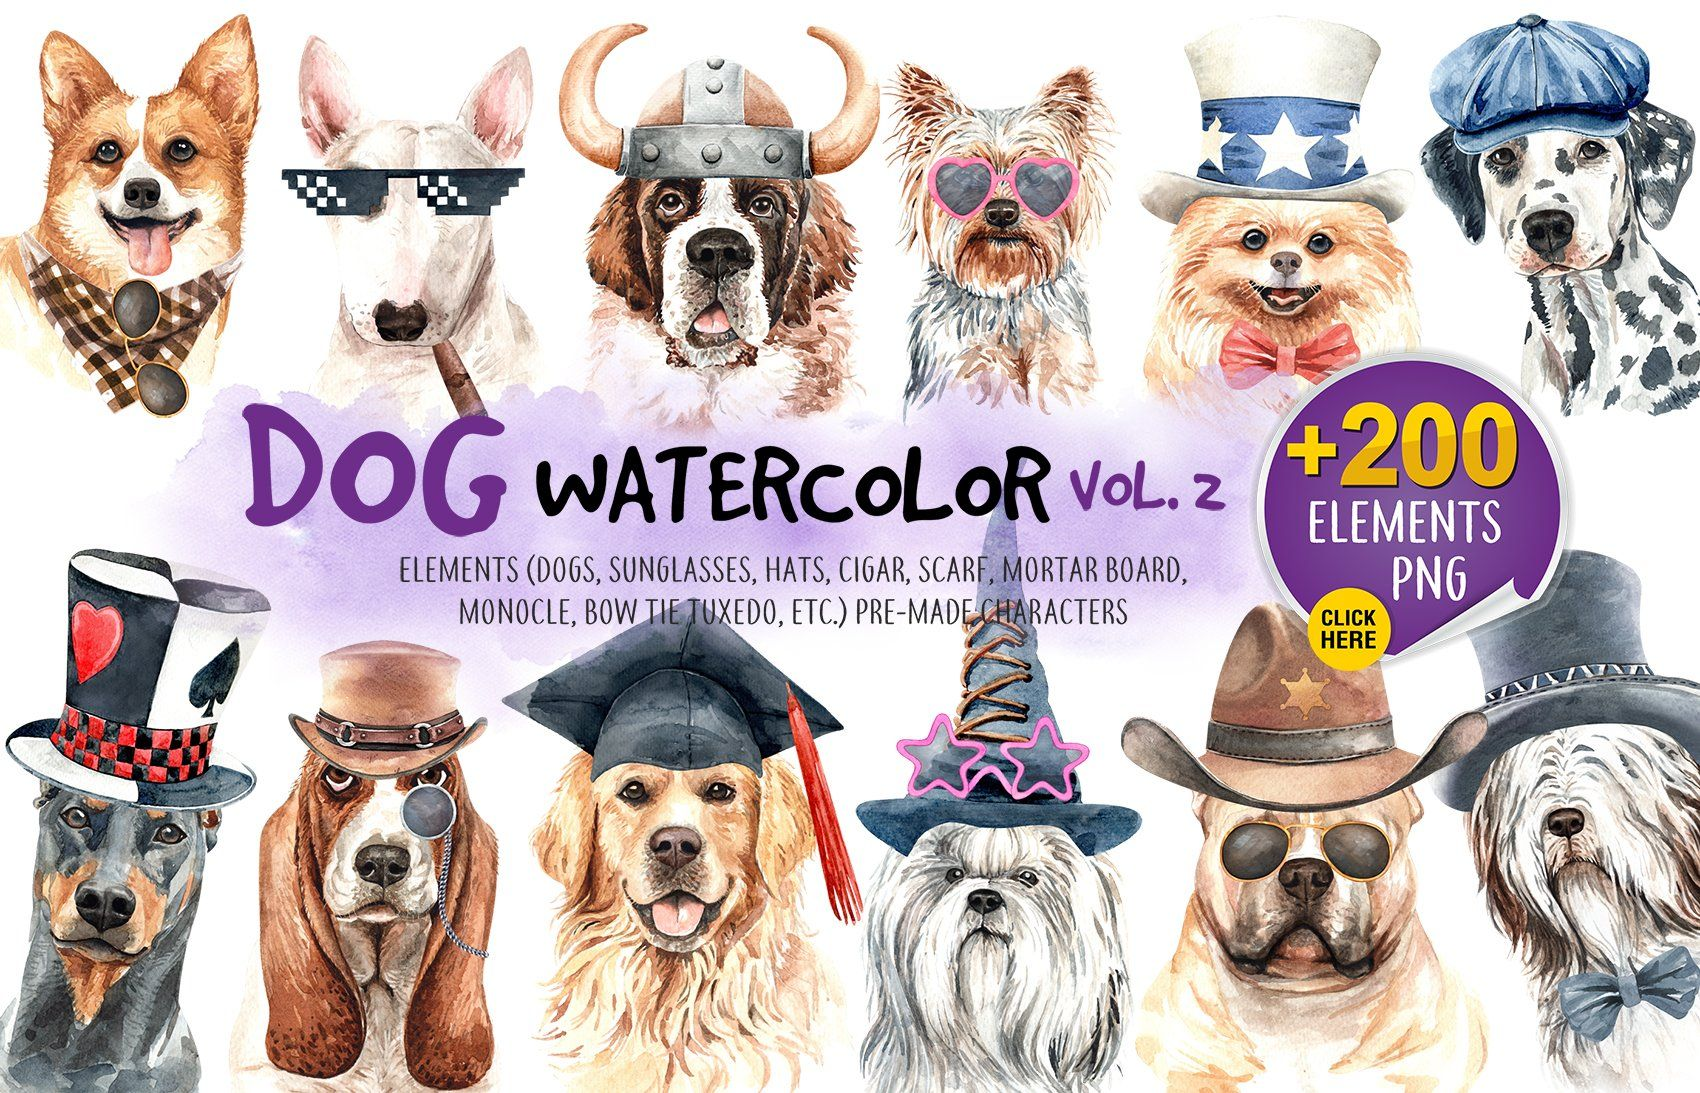 Dog Watercolor Animal Clipart Aff Tie Tuxedo Top Bow Ad